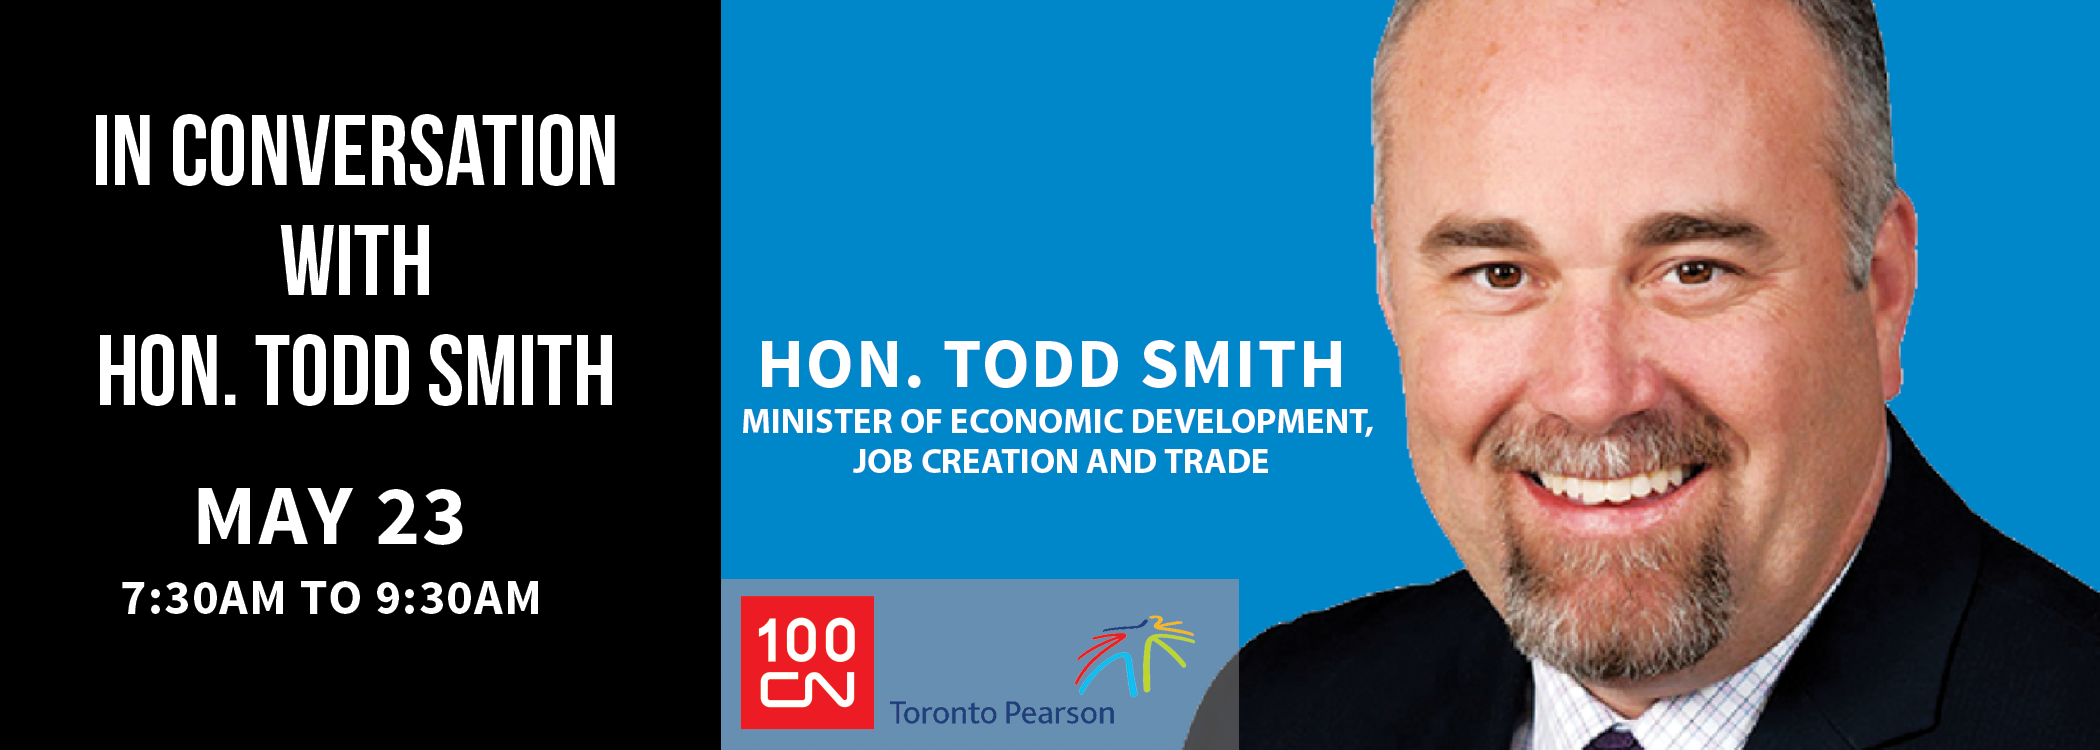 SMITH-BANNER(1).png